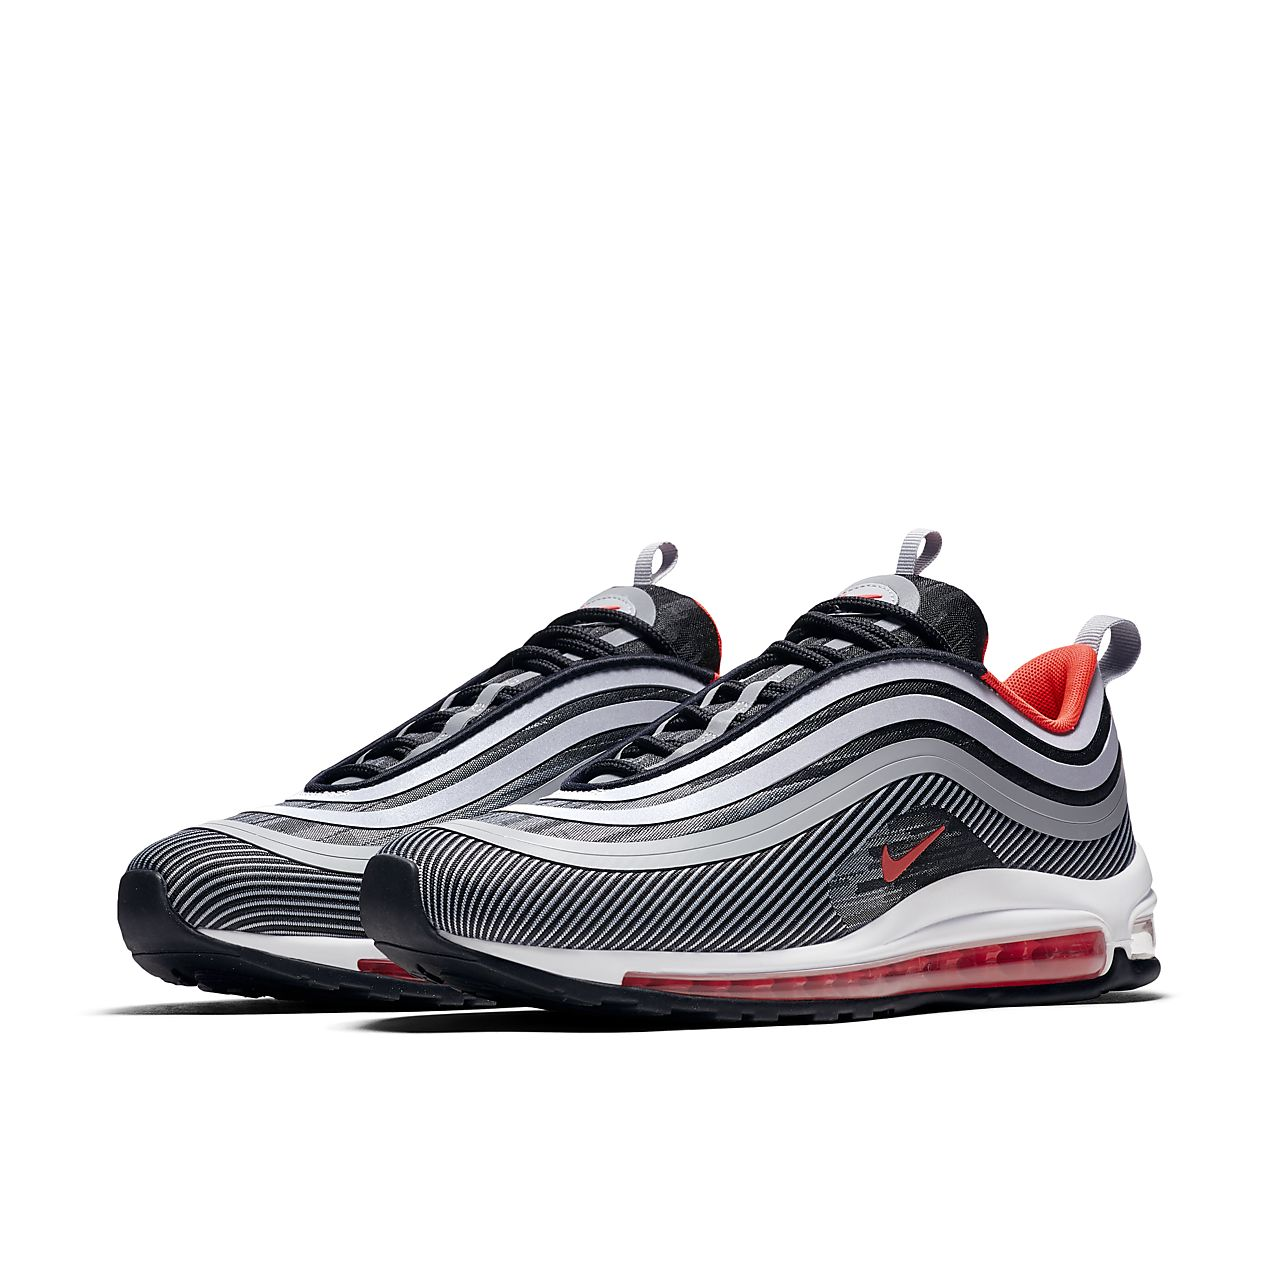 677bdd839ff60 Nike Air Max 97 Ultra '17 Men's Shoe. Nike.com MY